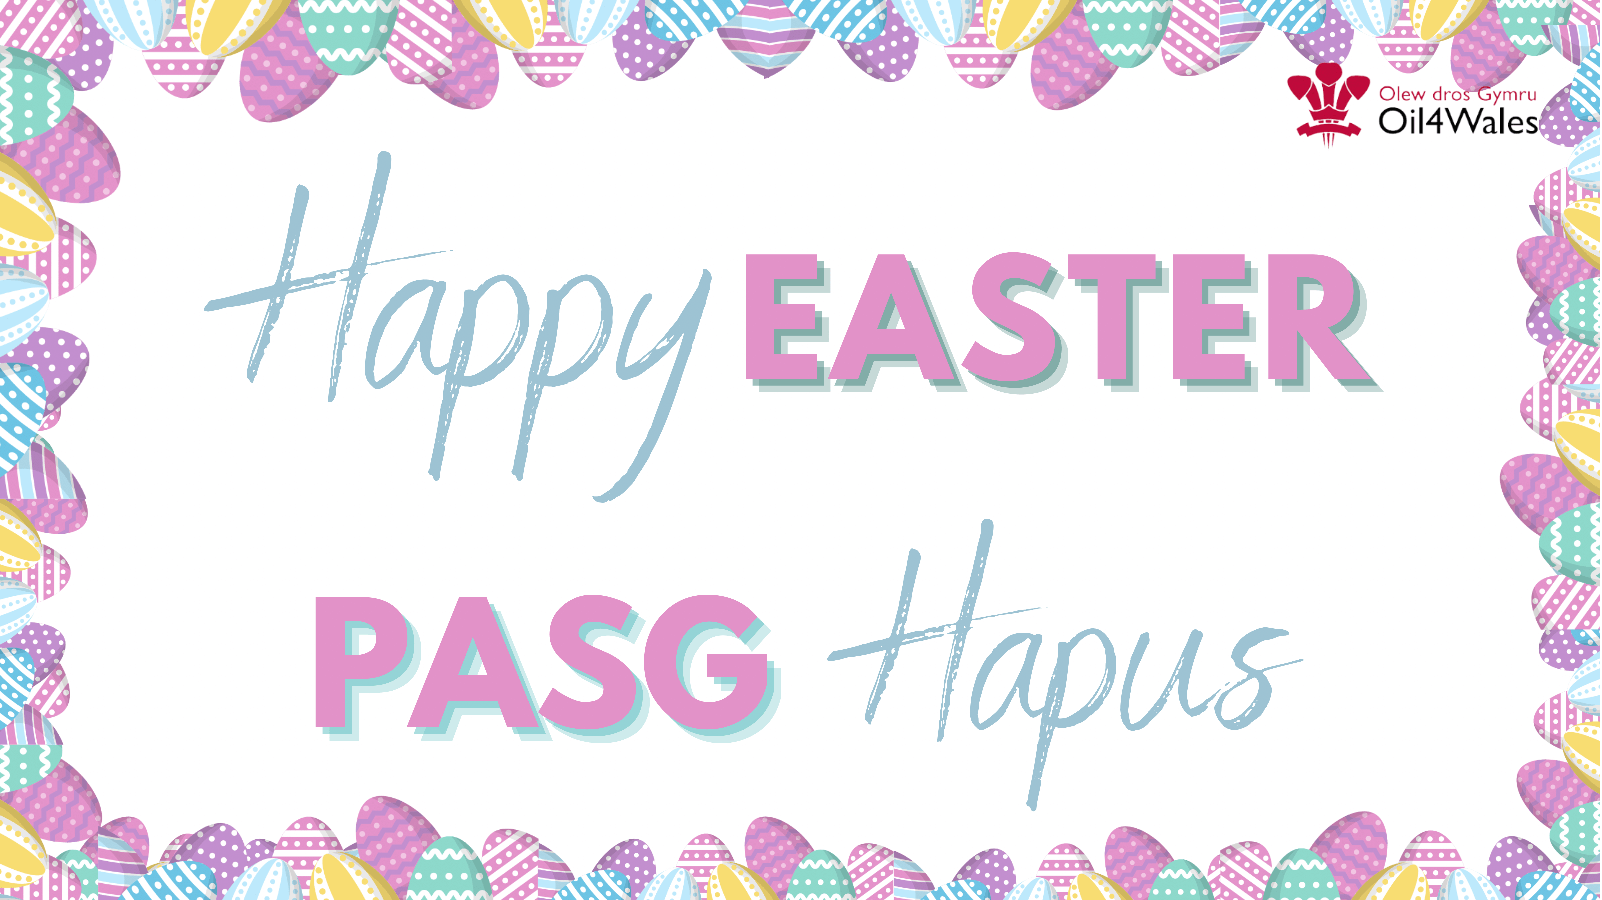 Happy Easter Pasg Hapus